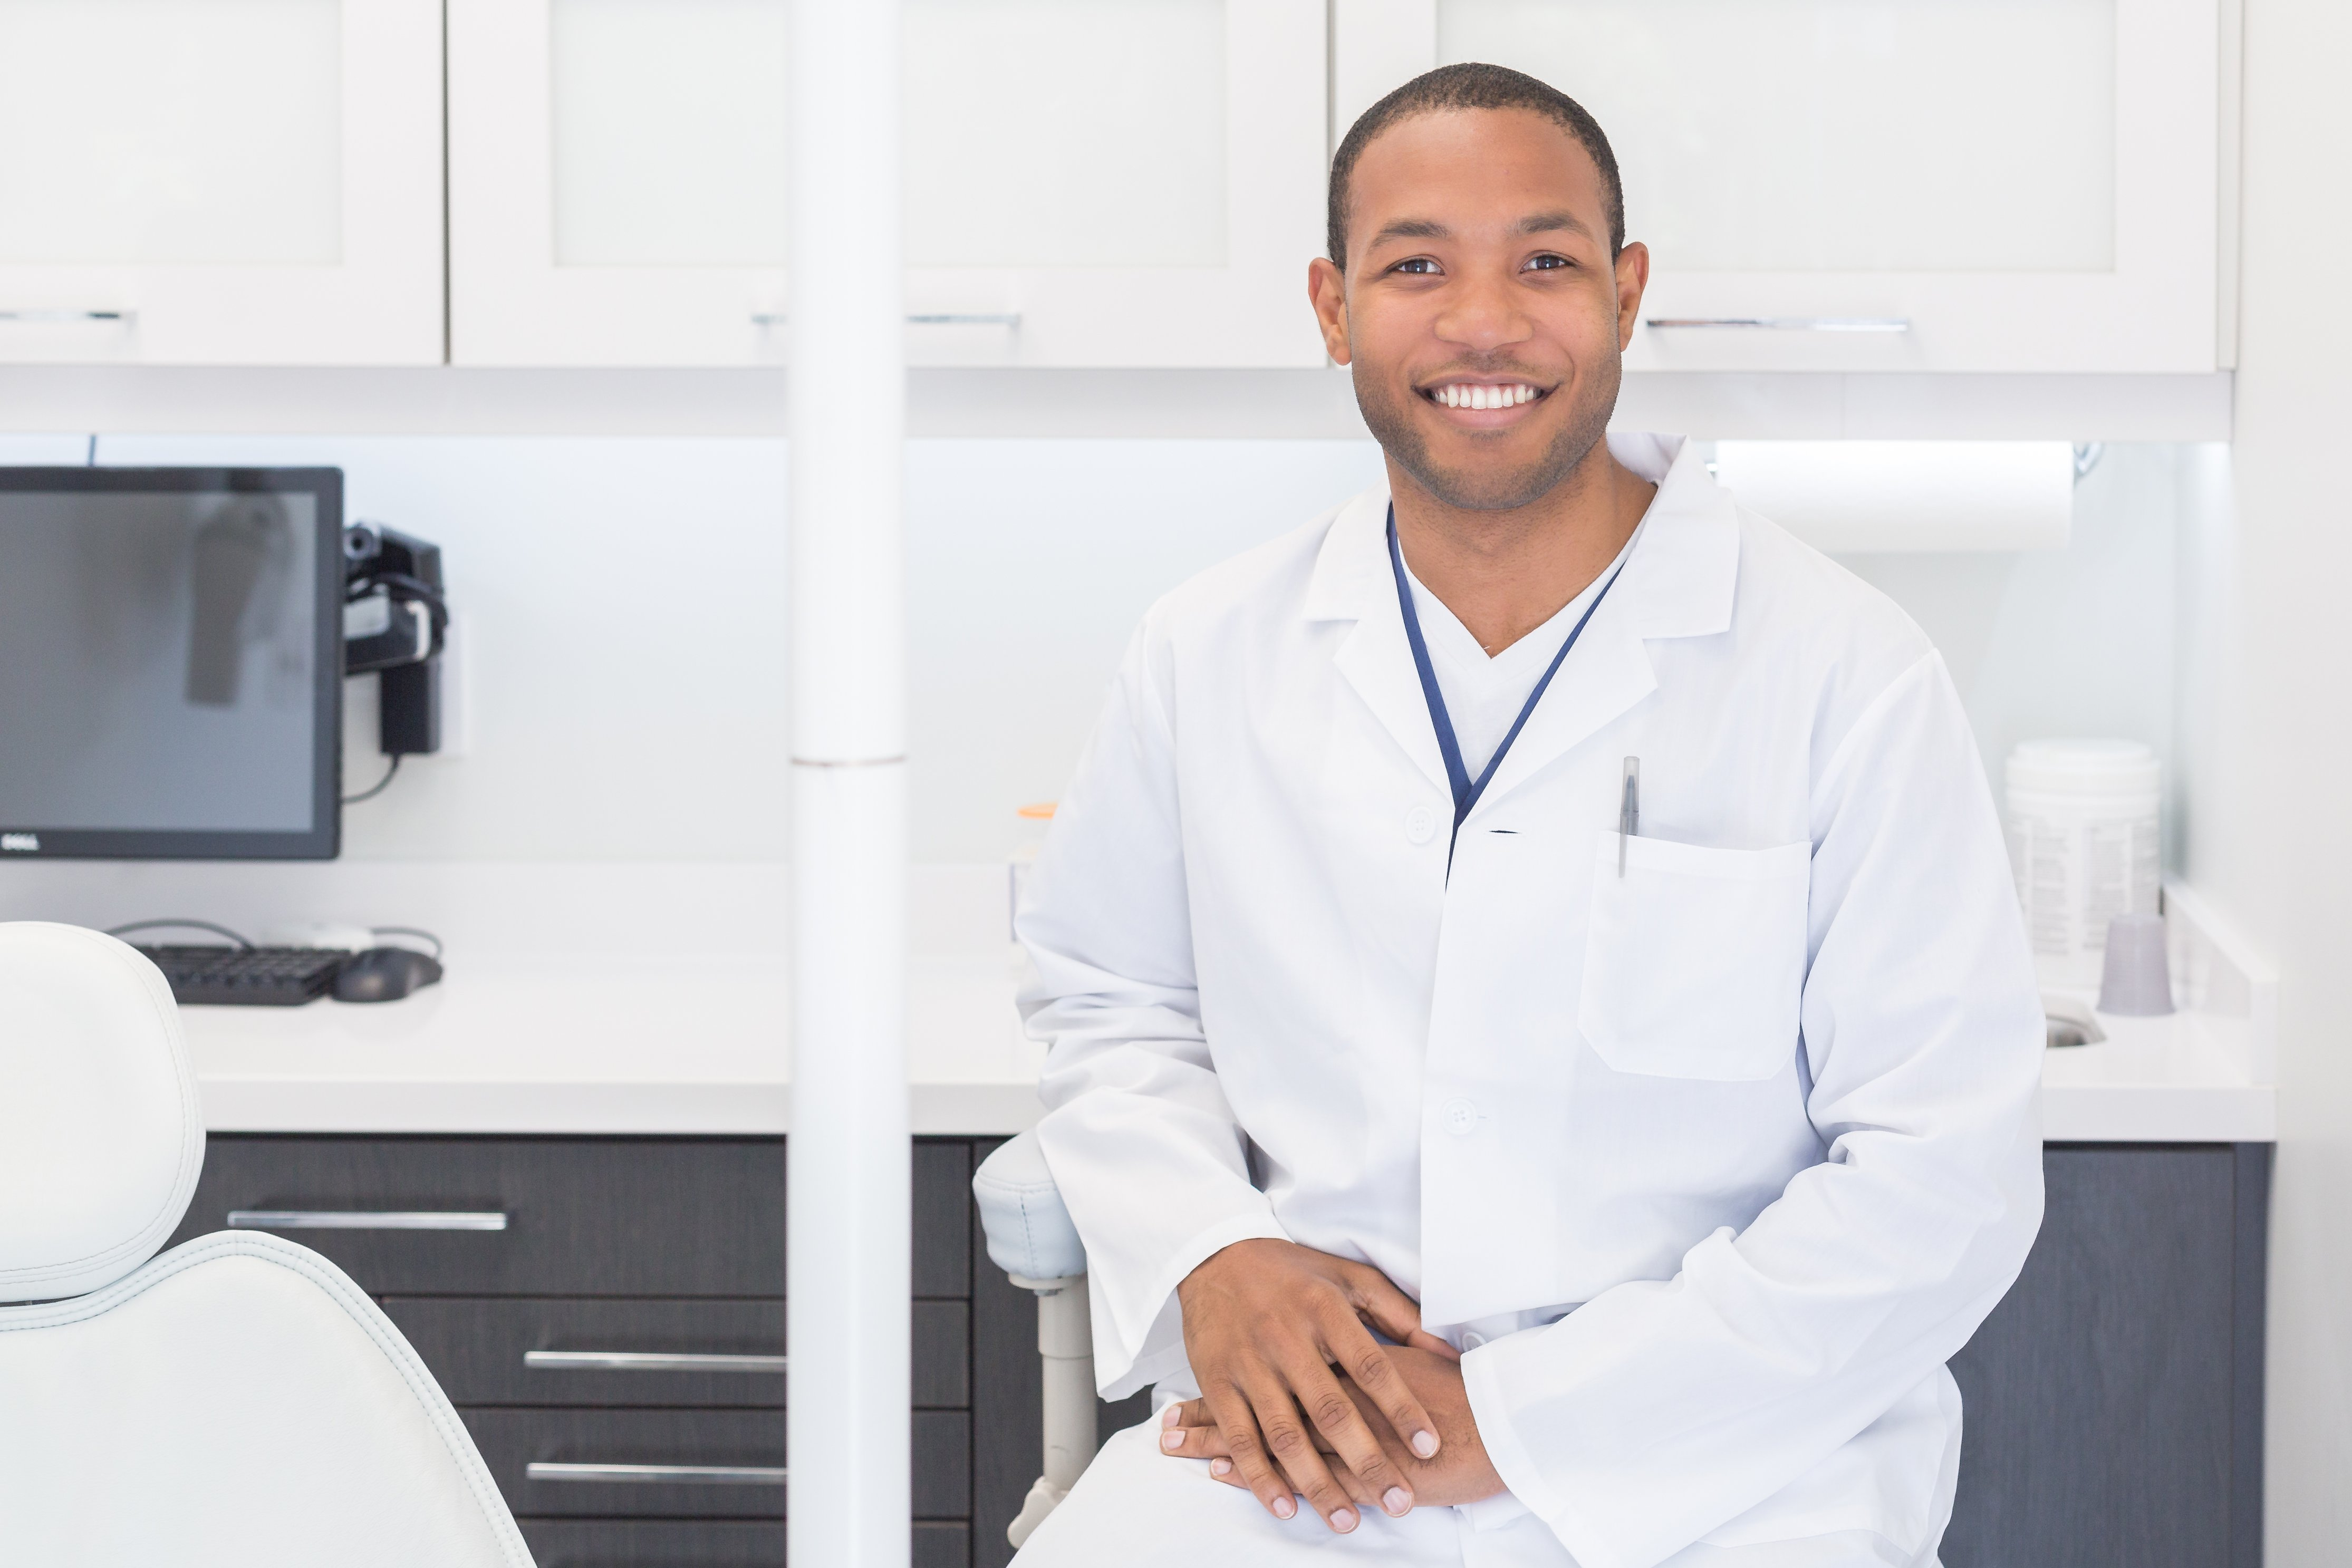 health care professional smiling